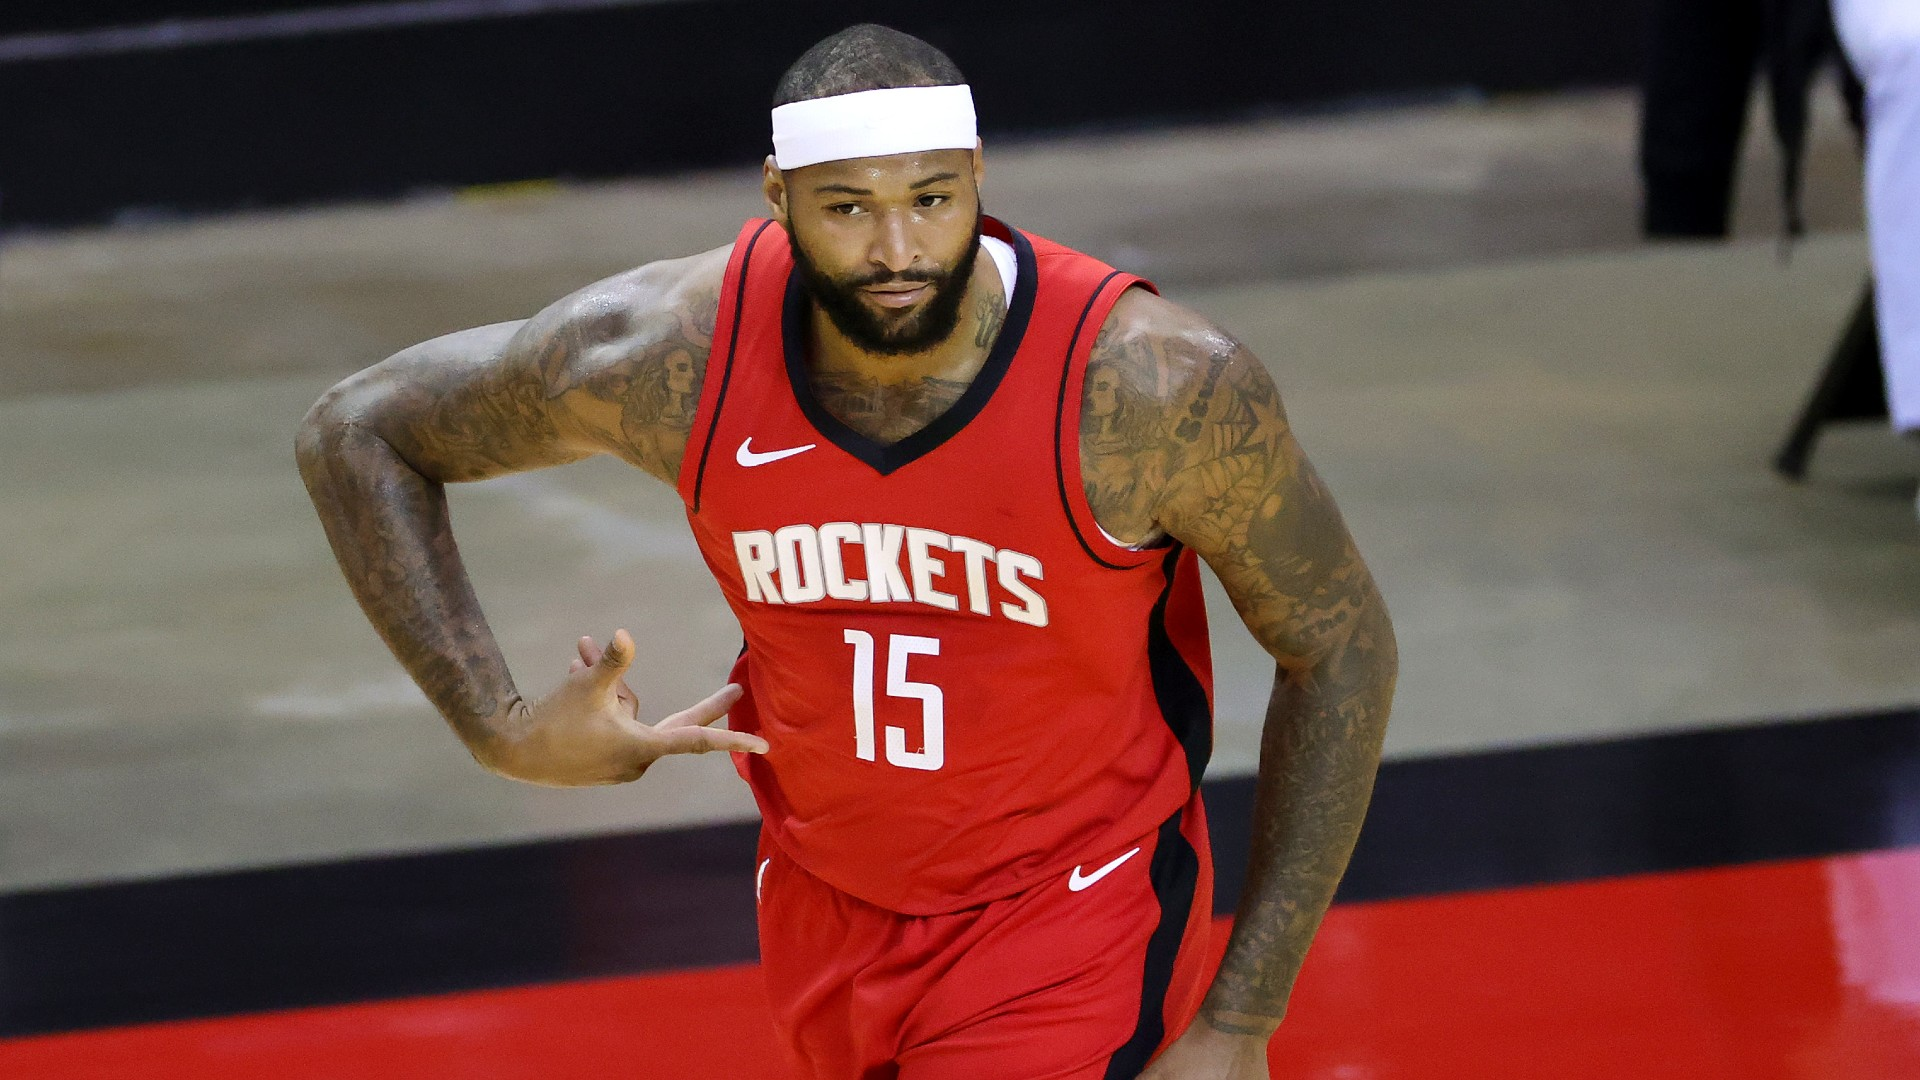 Rockets' DeMarcus Cousins rips 'disrespectful' James Harden: 'It's completely unfair to us'